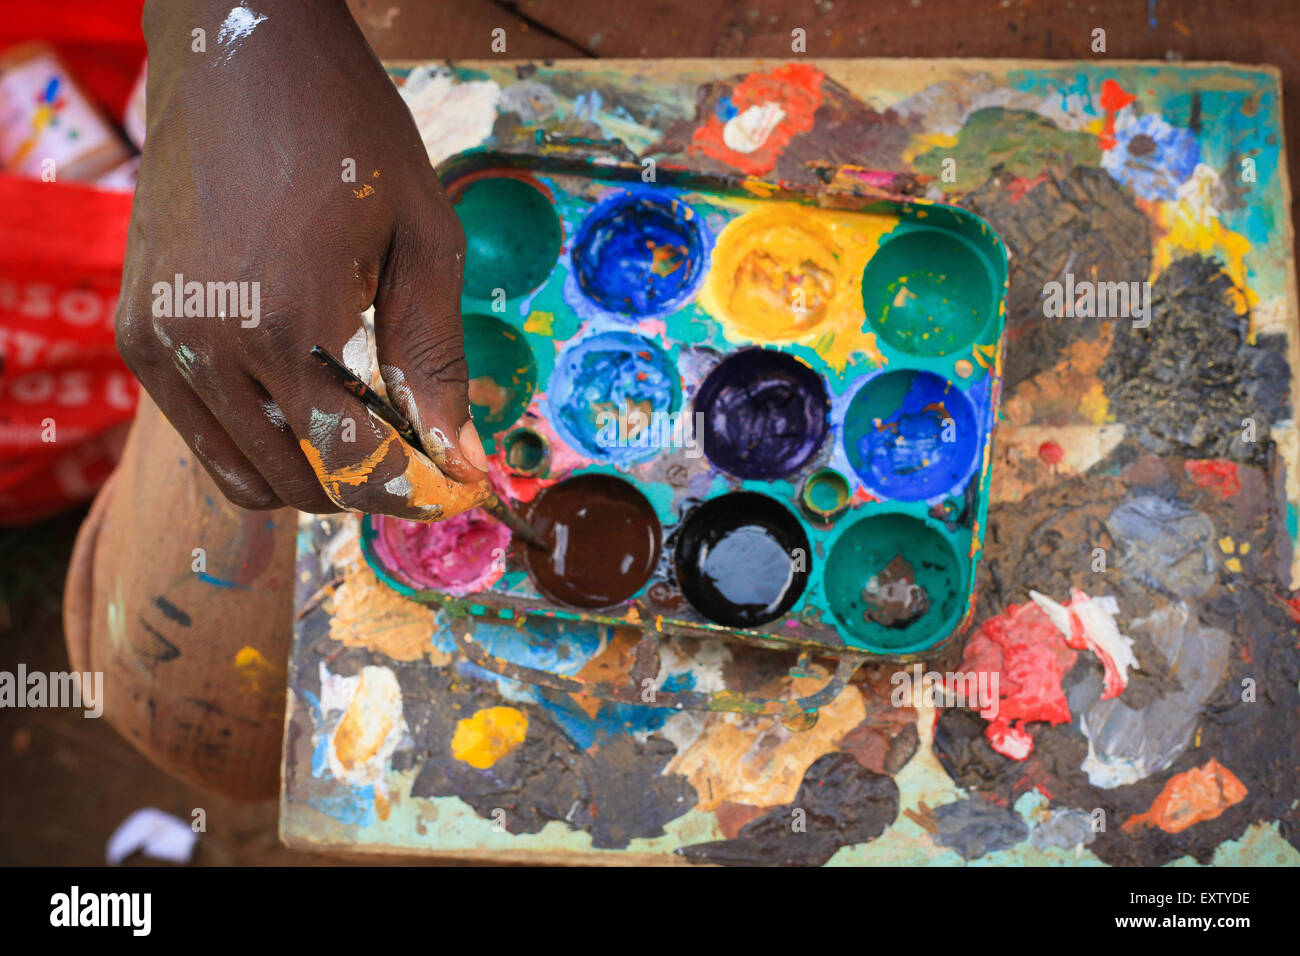 Nigeria artists seek assistance from authorities to promote their artist works